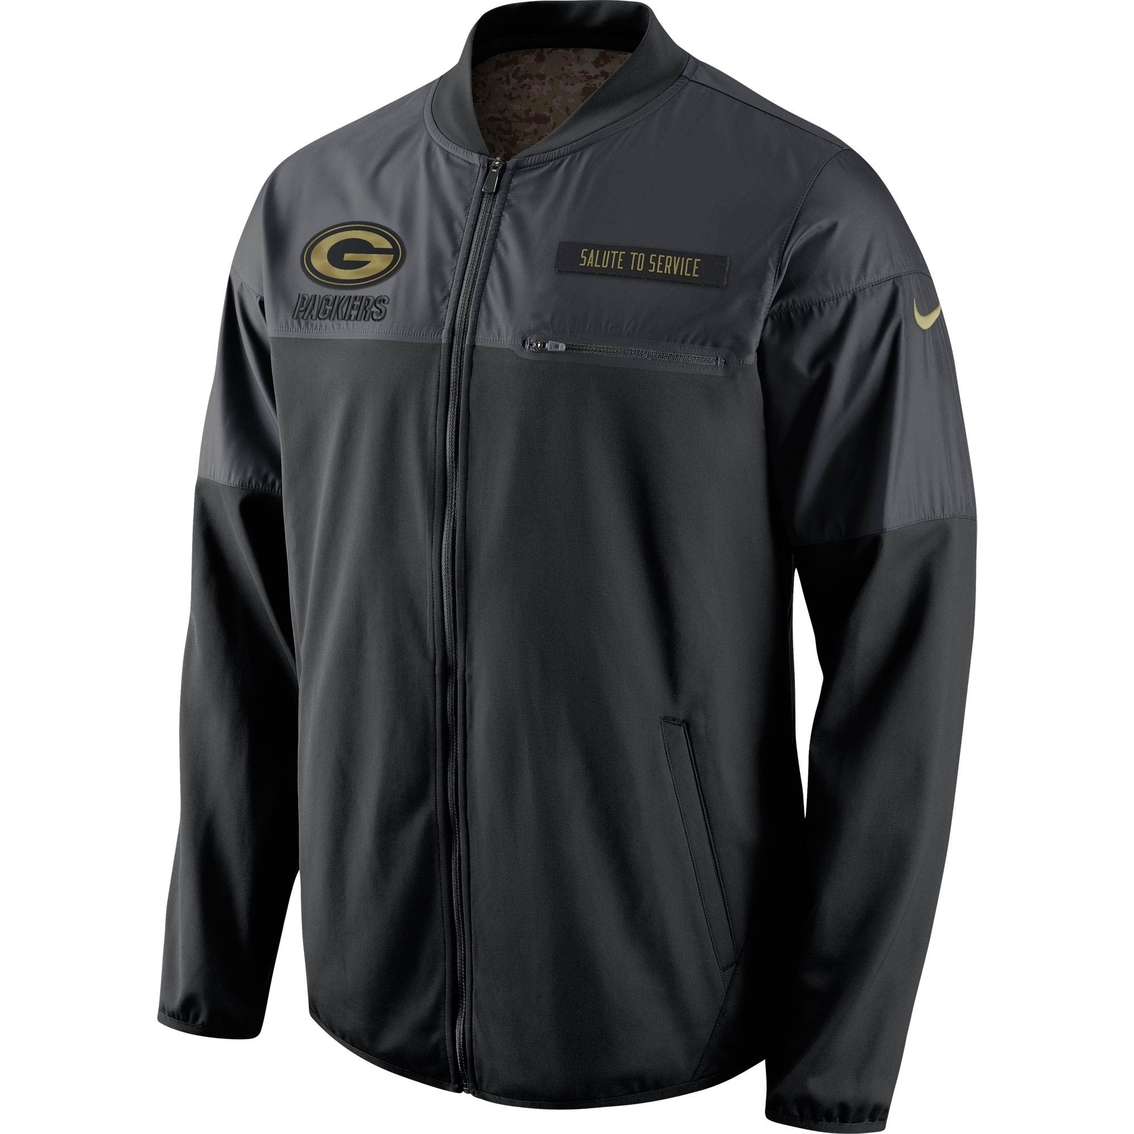 new arrival 827ea 61cd2 Nike Nfl Green Bay Packers Salute To Service Jacket ...